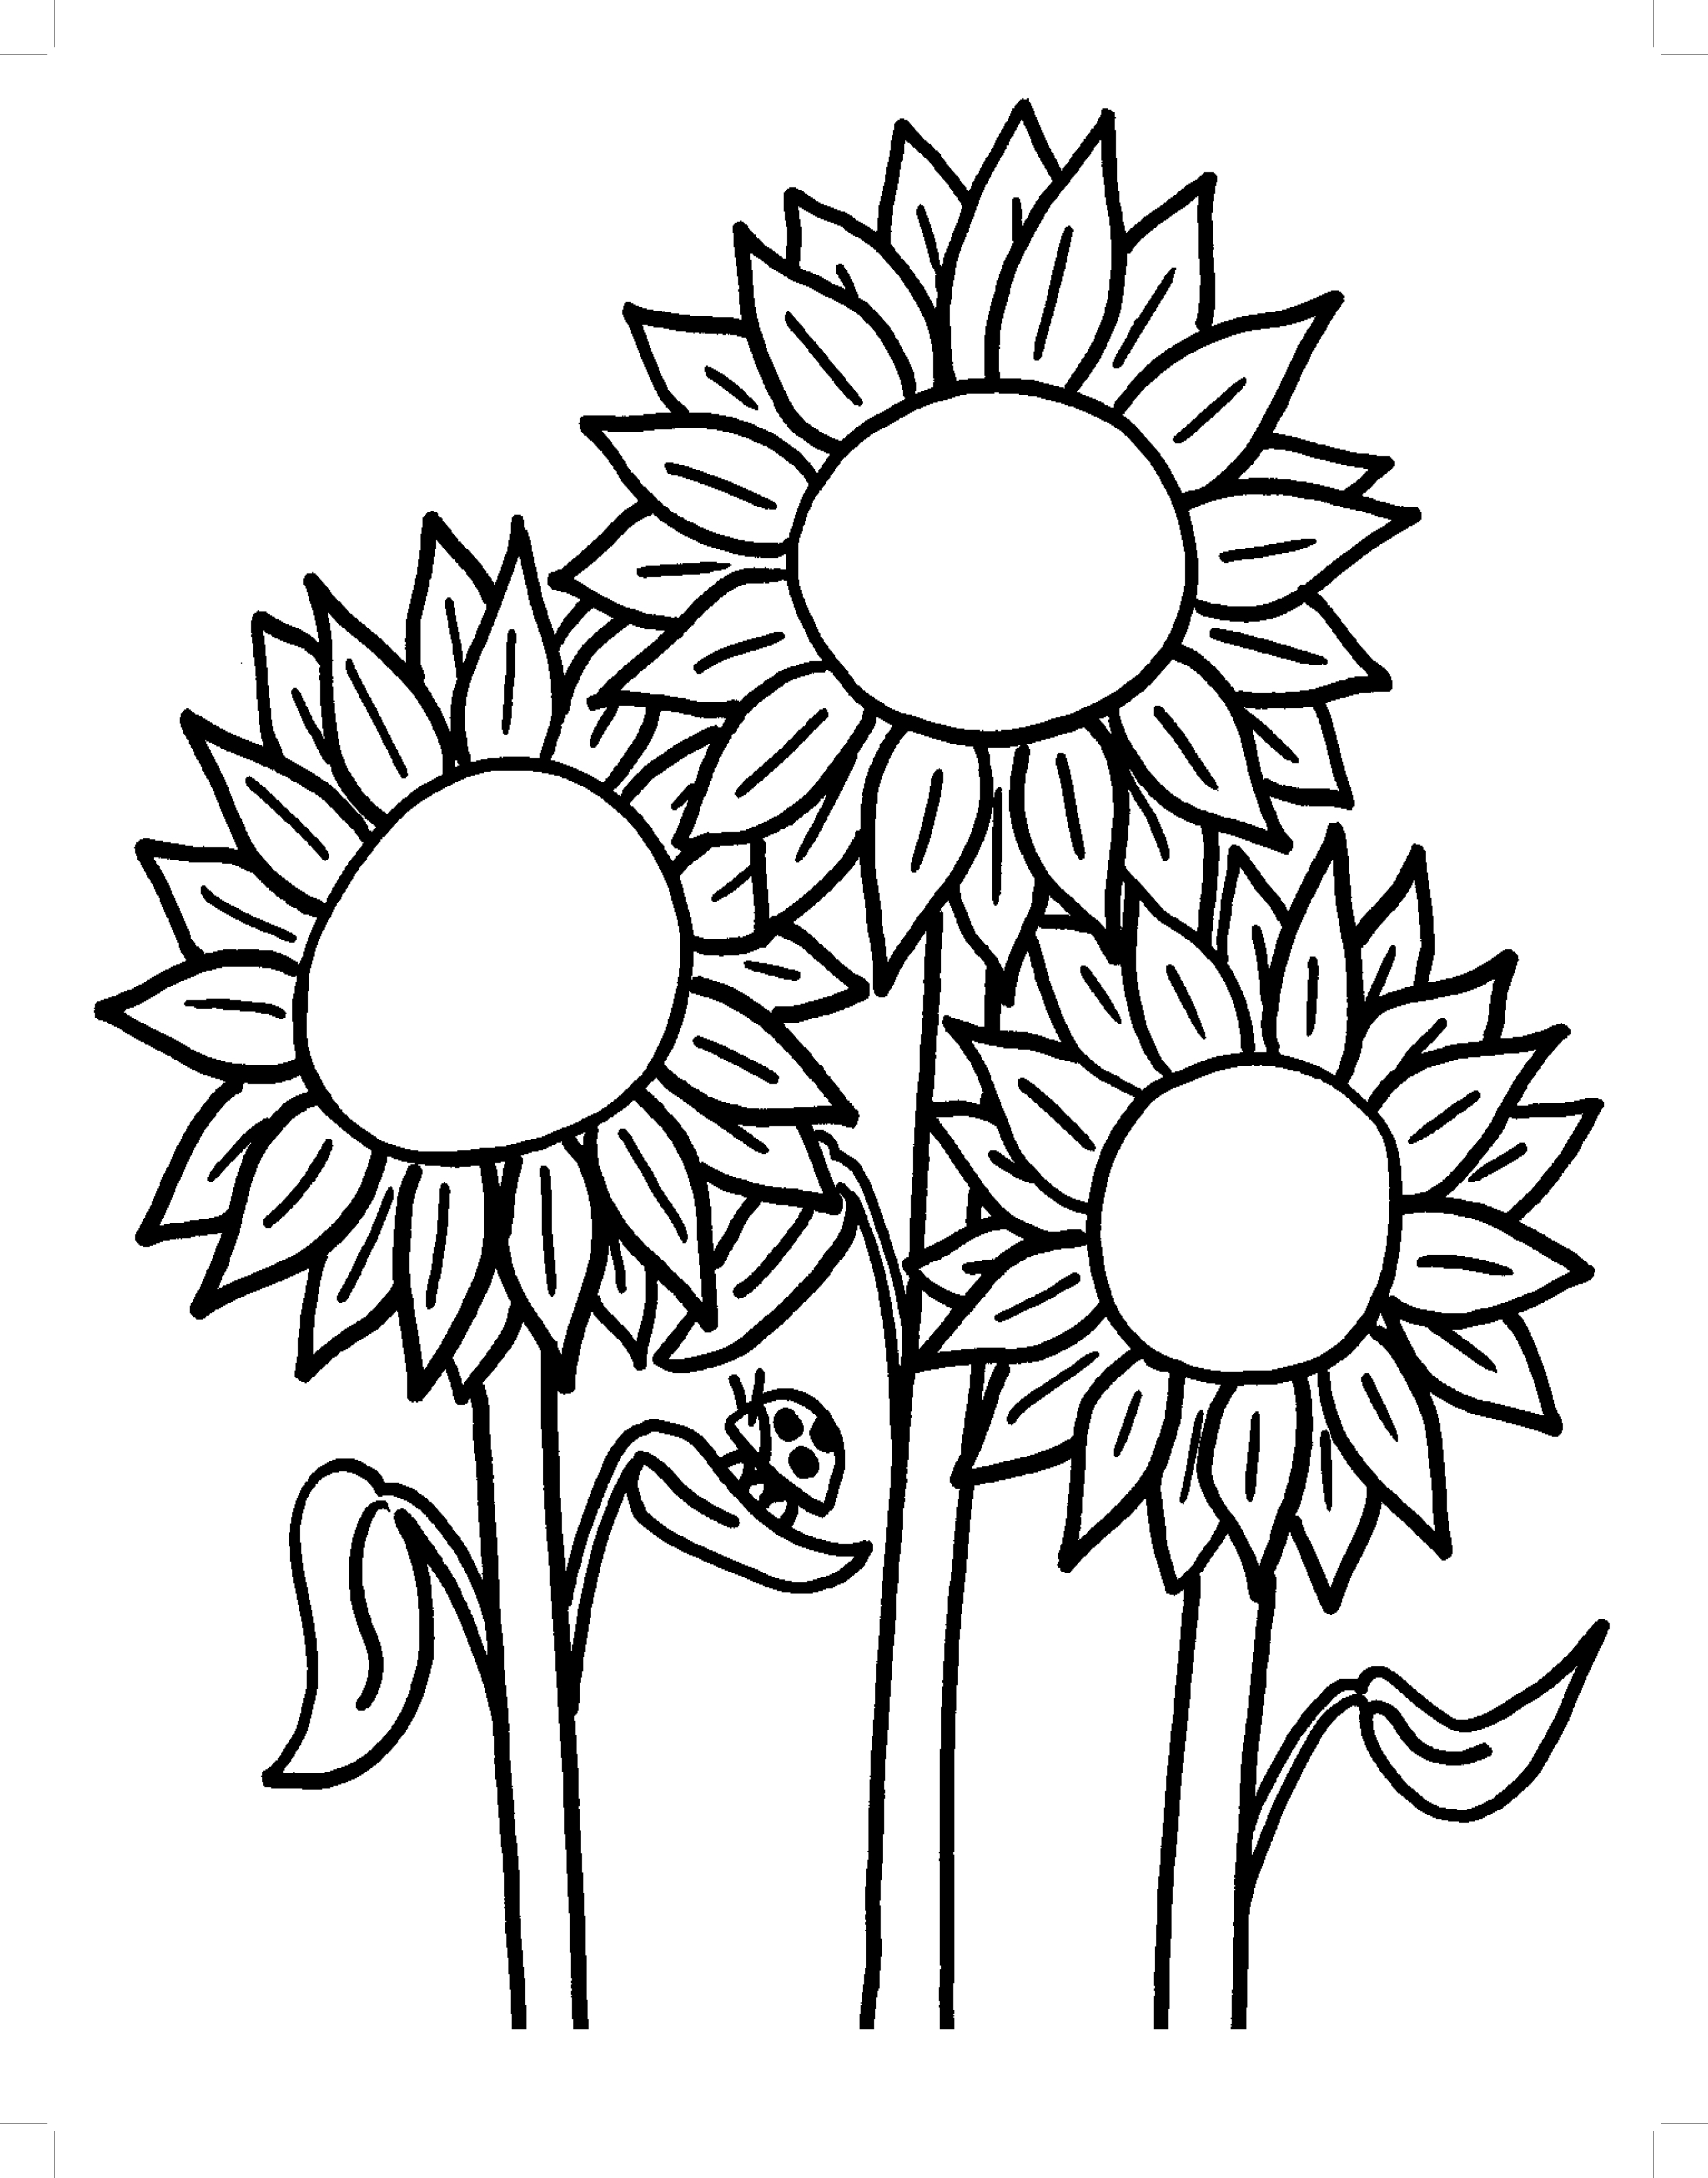 sunflower pictures to colour in sunflower coloring pages to download and print for free pictures in to colour sunflower